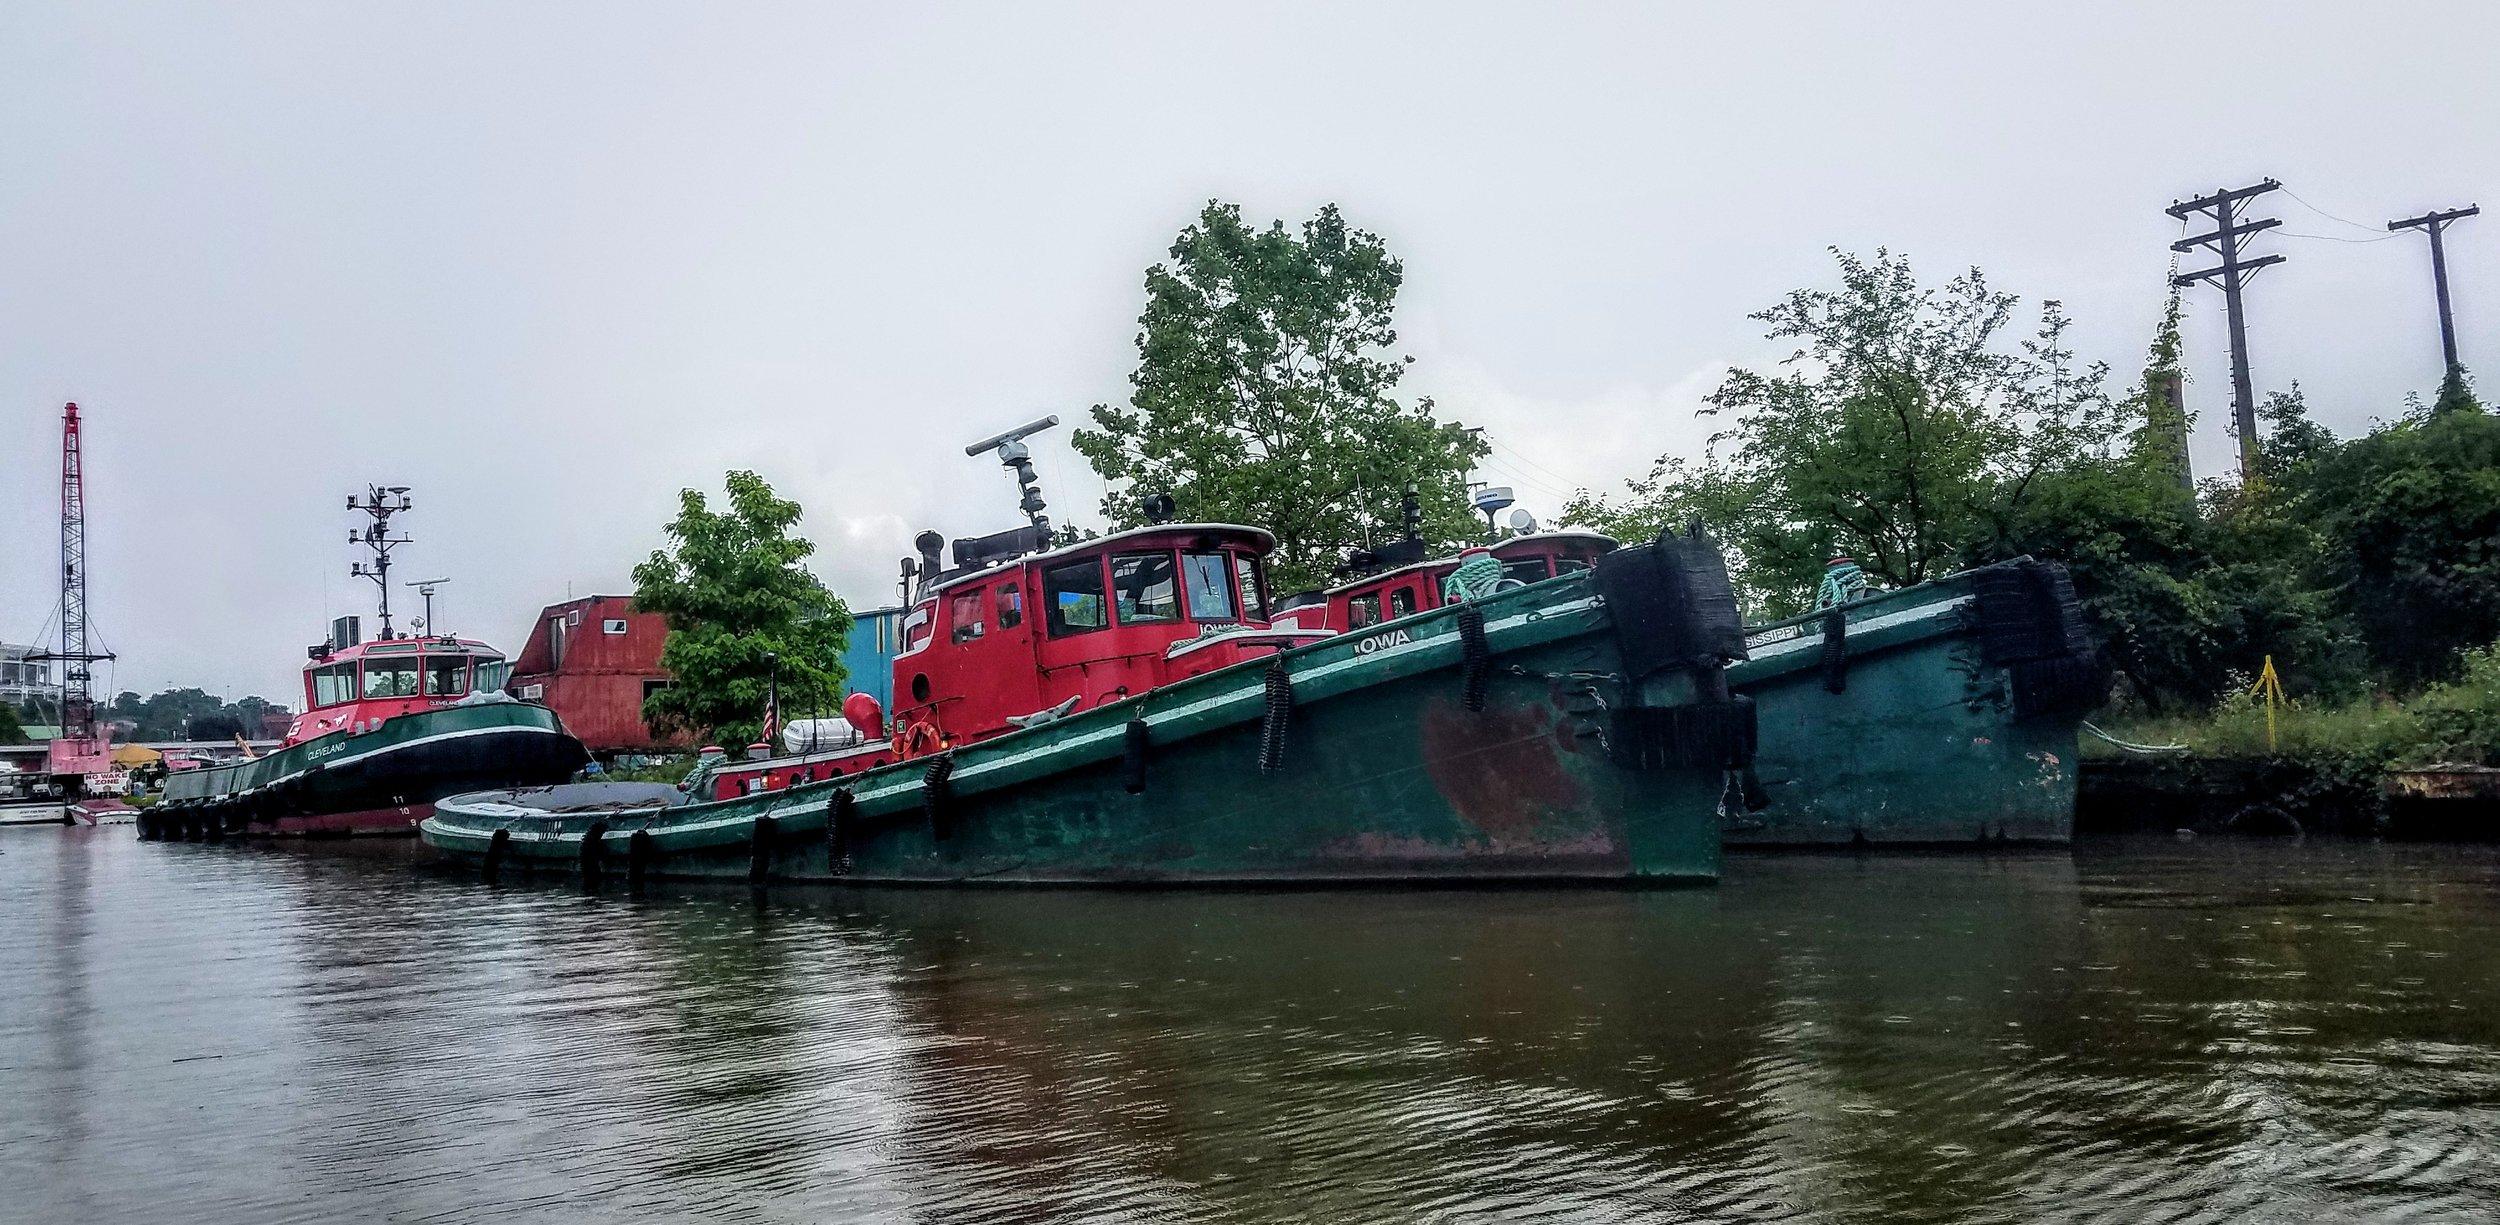 They may have a few years on them but these tugs are still in service